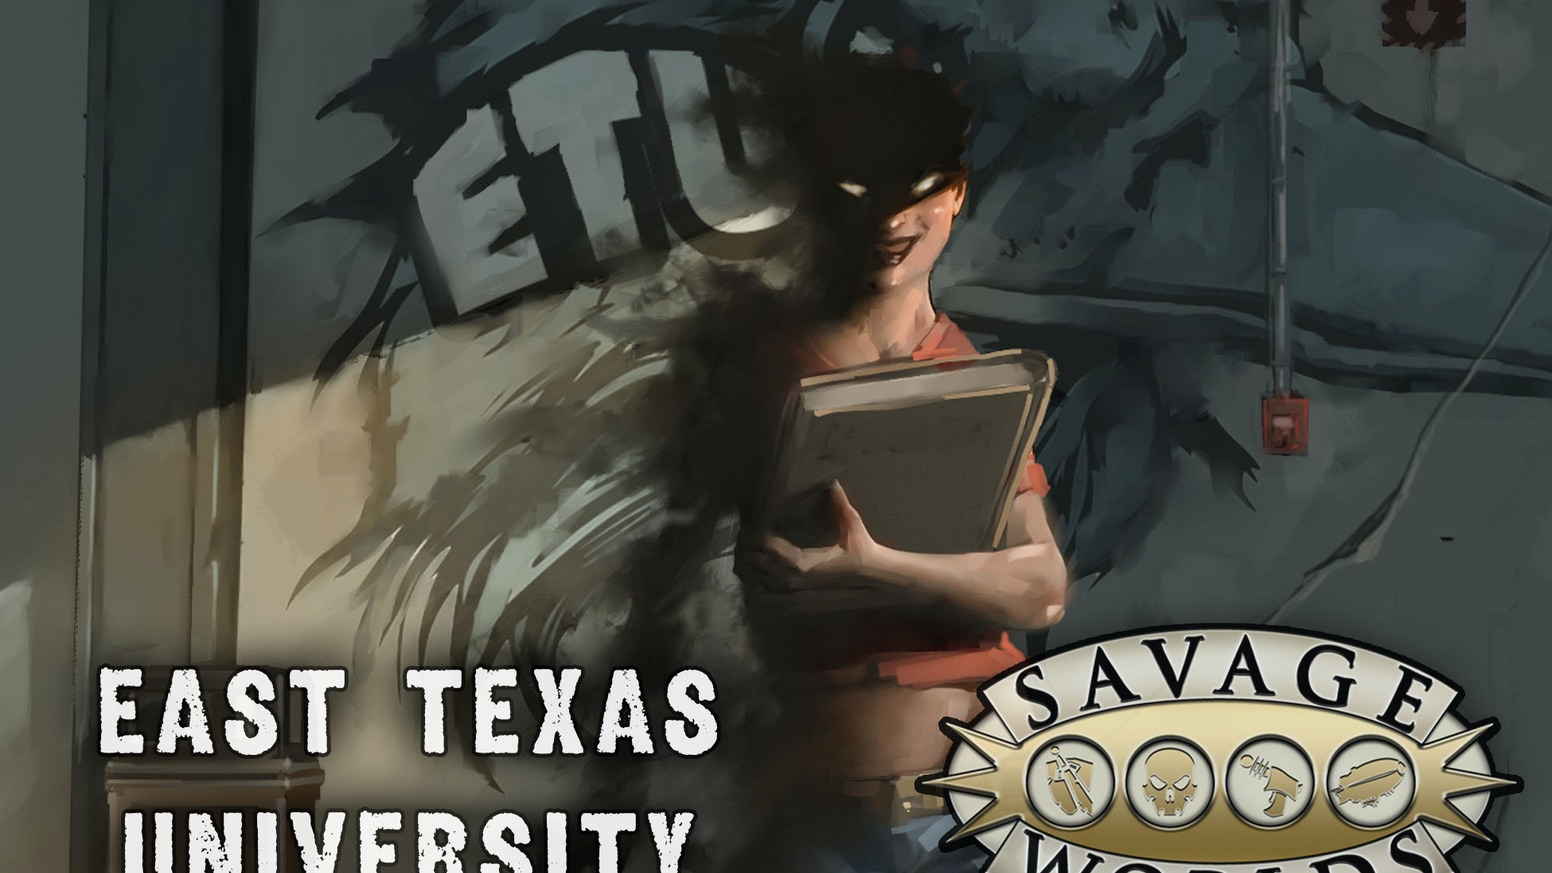 Students at East Texas University have a few more challenges than other students–balancing parties, studies, and saving the world!